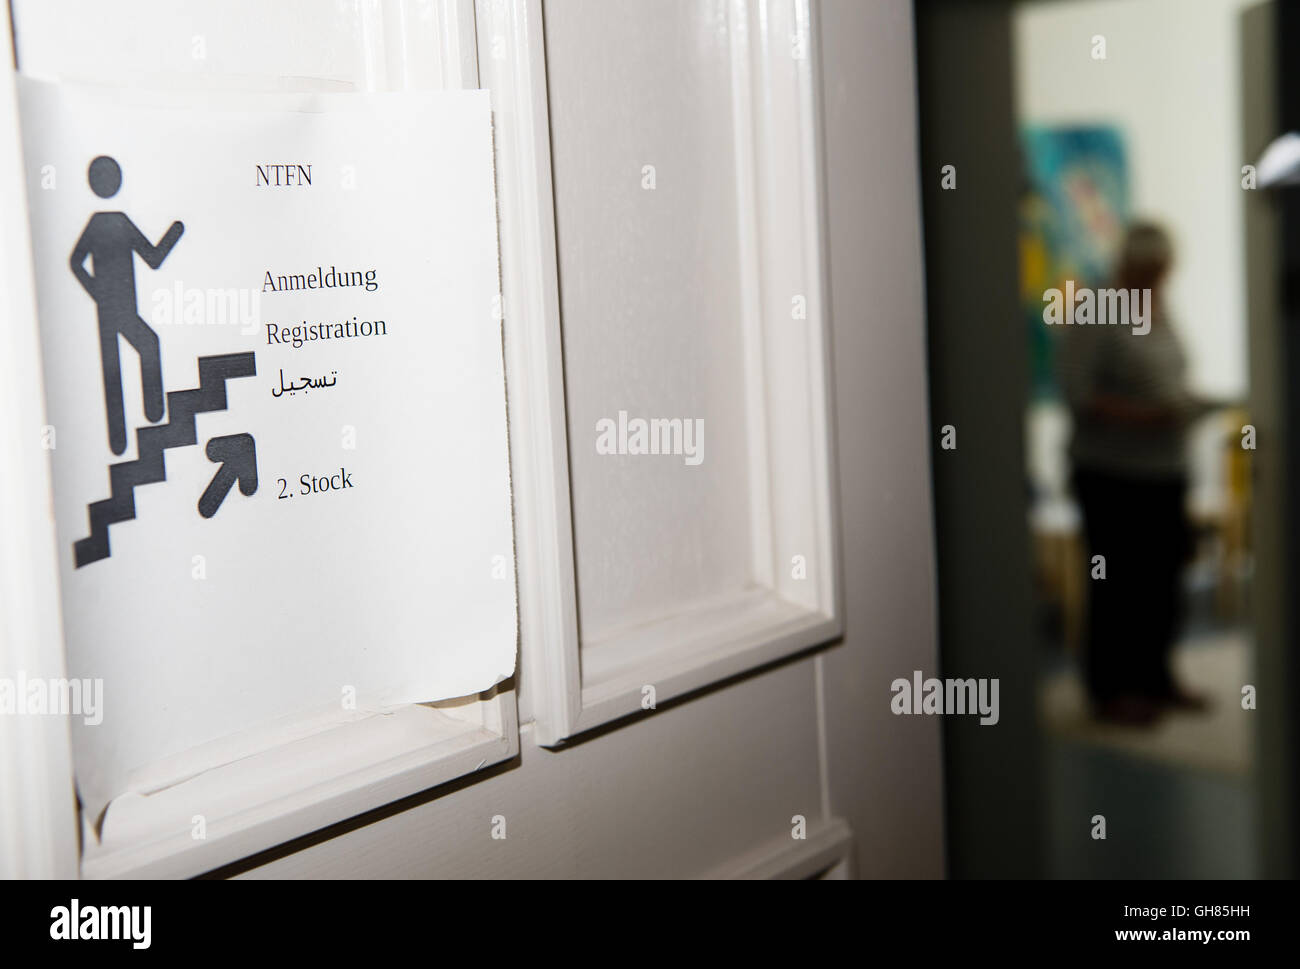 Hanover, Germany. 05th Aug, 2016. A sign in English, German, and Arabic hangs on an open door at the Network for - Stock Image